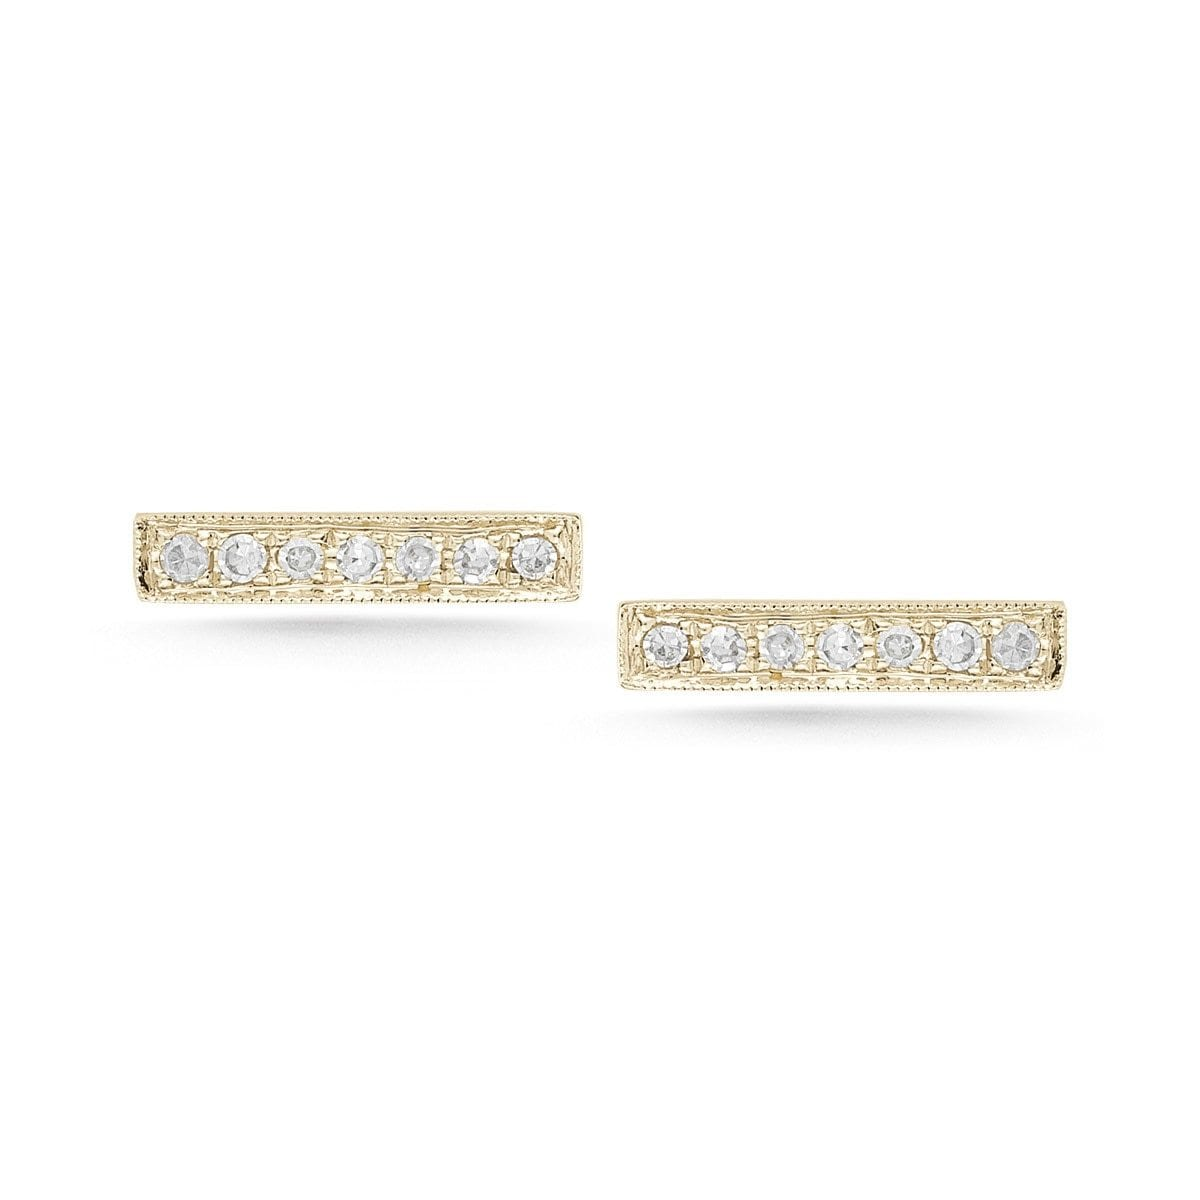 Vincents Fine Jewelry | Dana Rebecca | Sylvie Rose Bar Studs